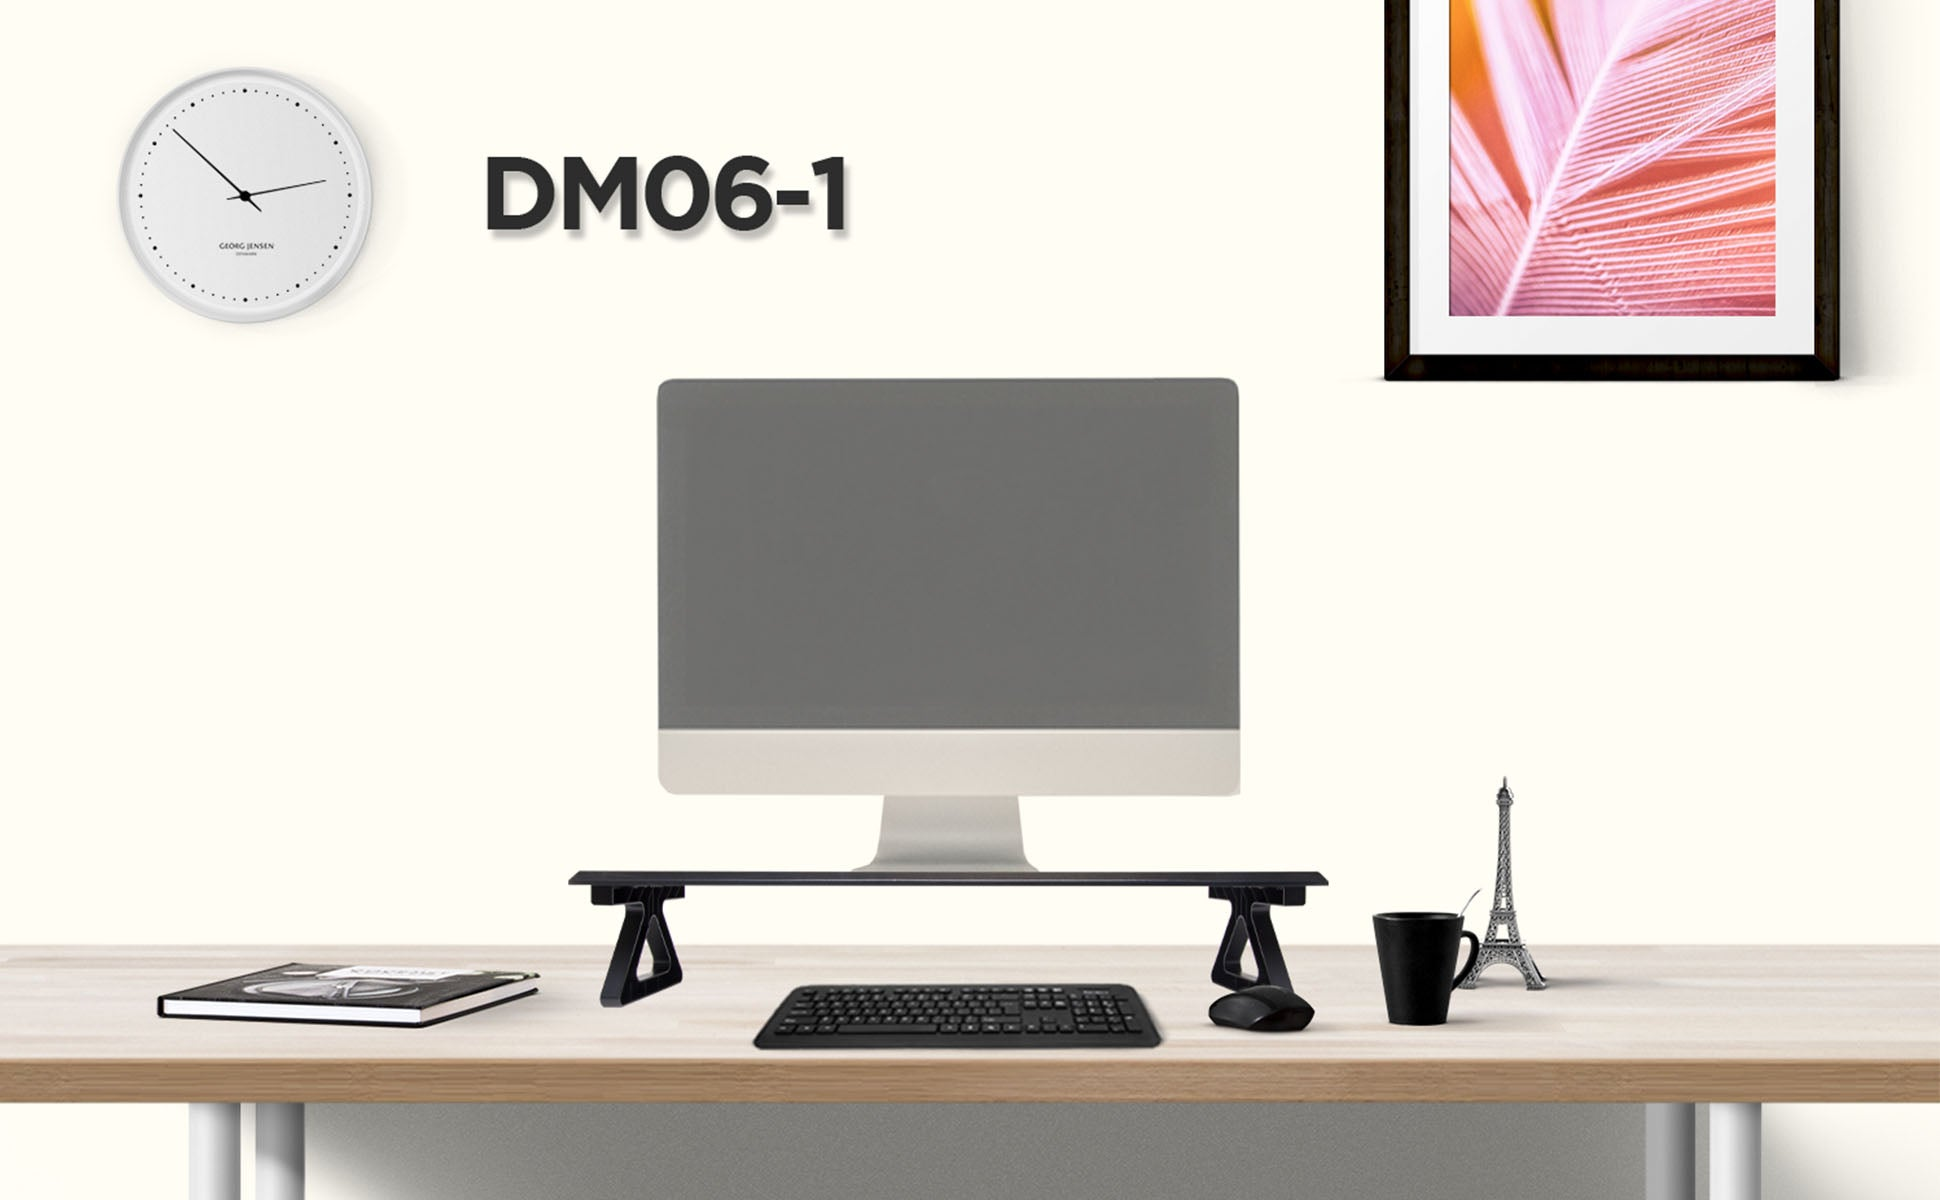 dm06-1, desk, mount, riser, stand, monitor, screen, computer, laptop, keyboard, tidy, space saver, office